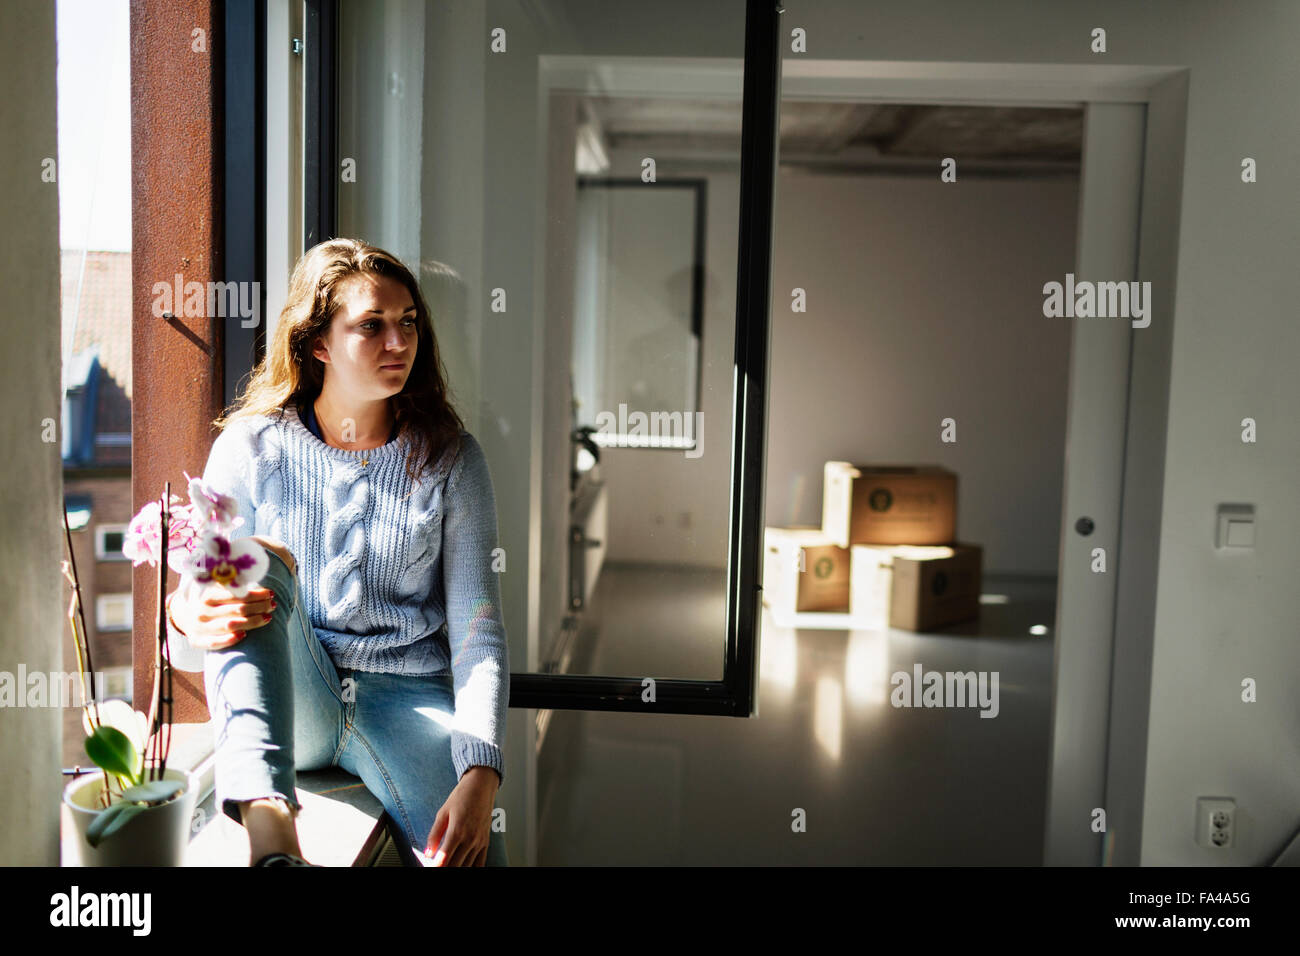 Thoughtful woman looking away sitting on window sill at new home - Stock Image